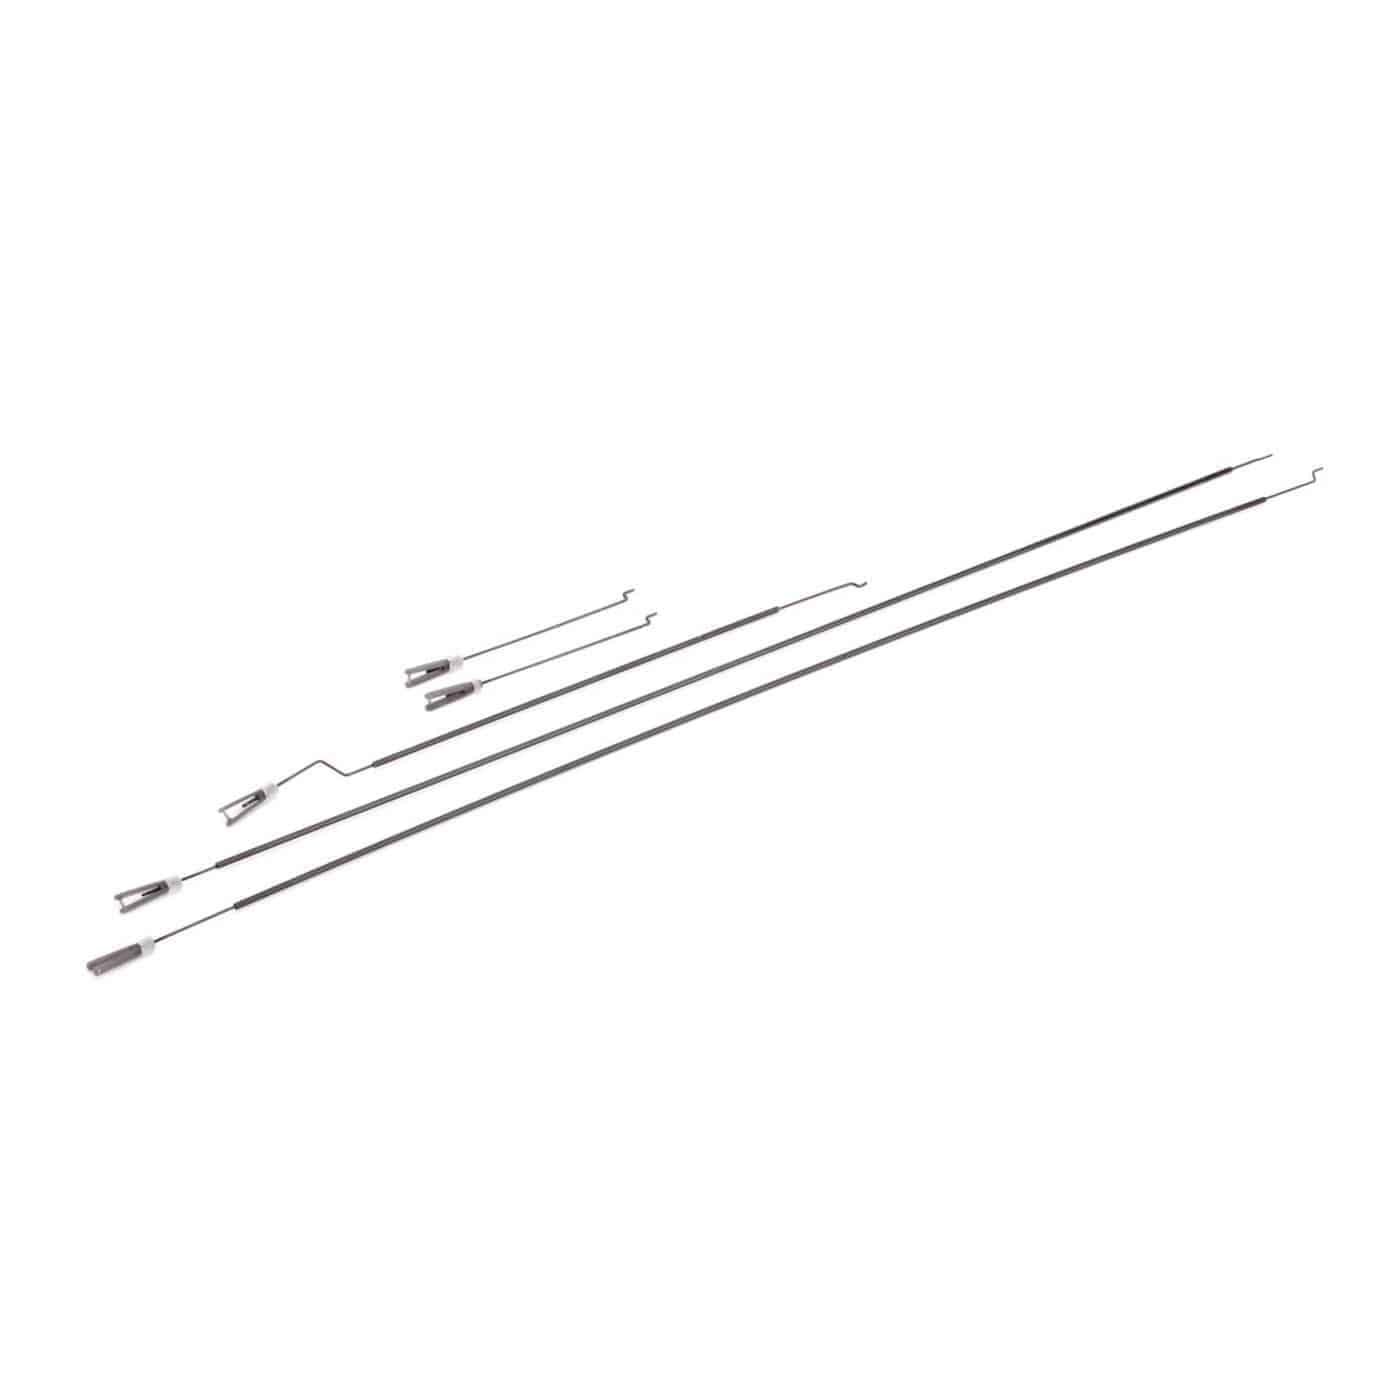 (EFL310005) - Pushrod Set: Apprentice S 15e RTF